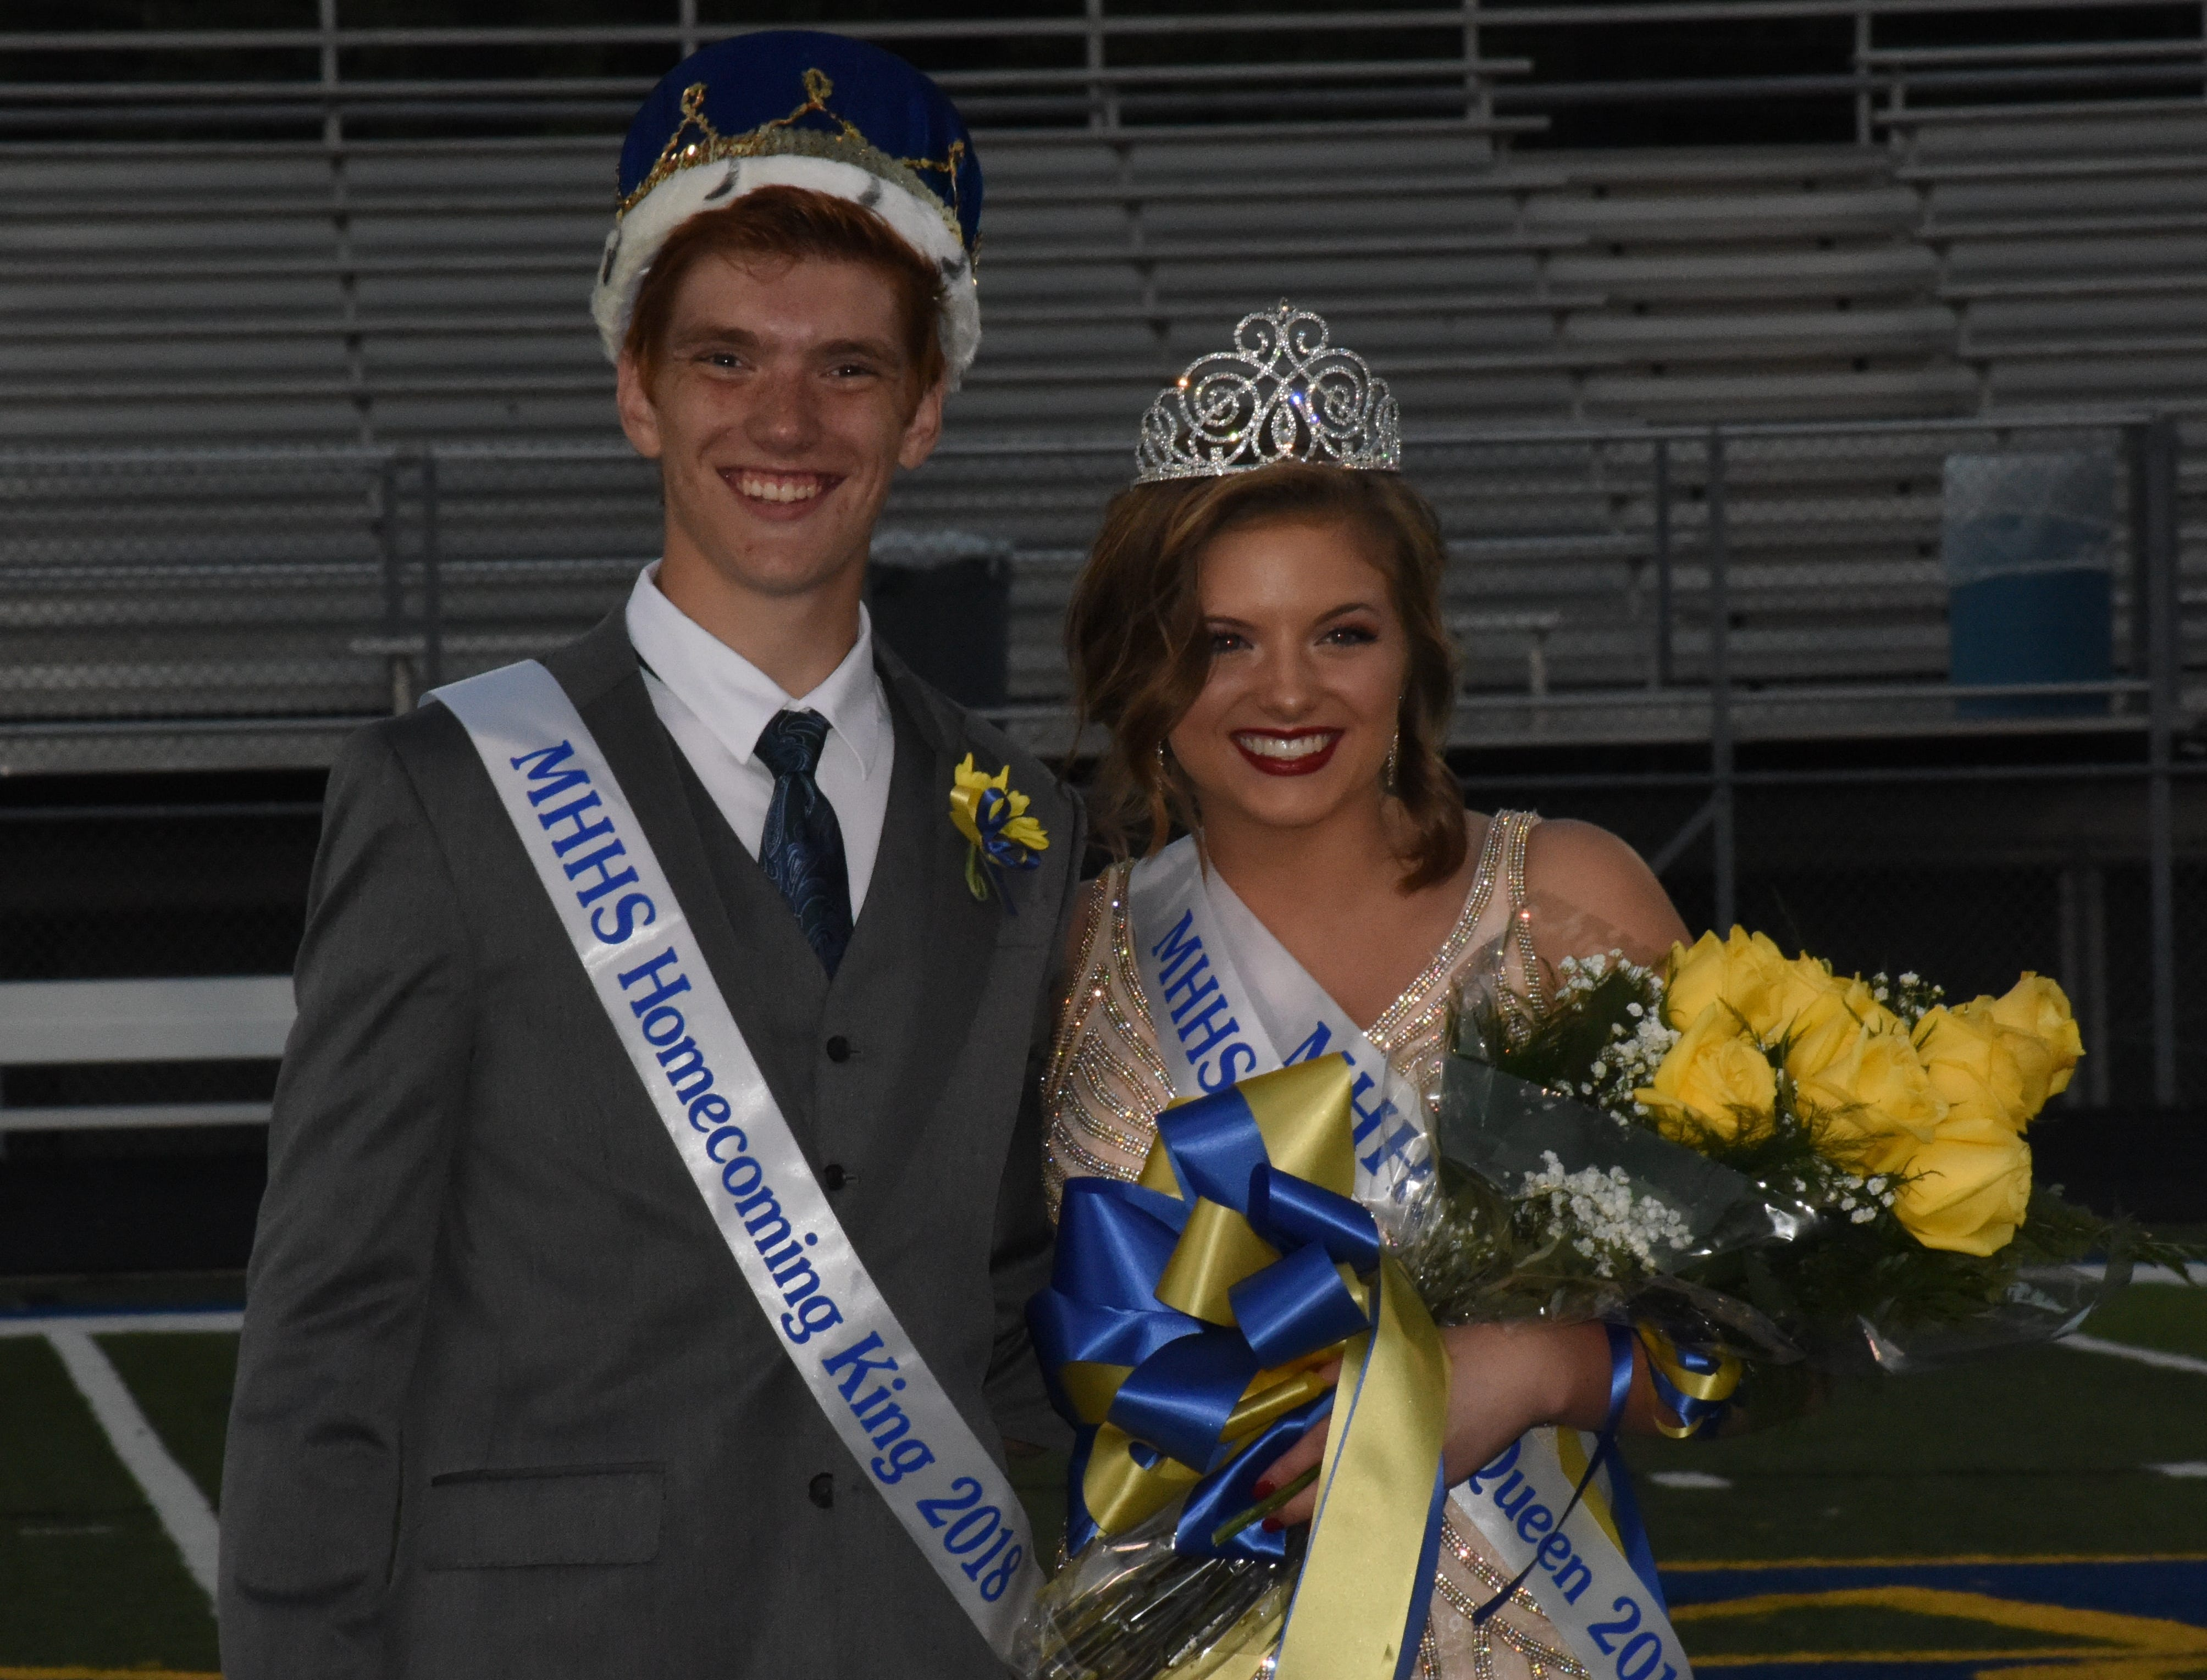 The Mountain Home Homecoming king and queen are Reese Villiger and Anna Cullipher.